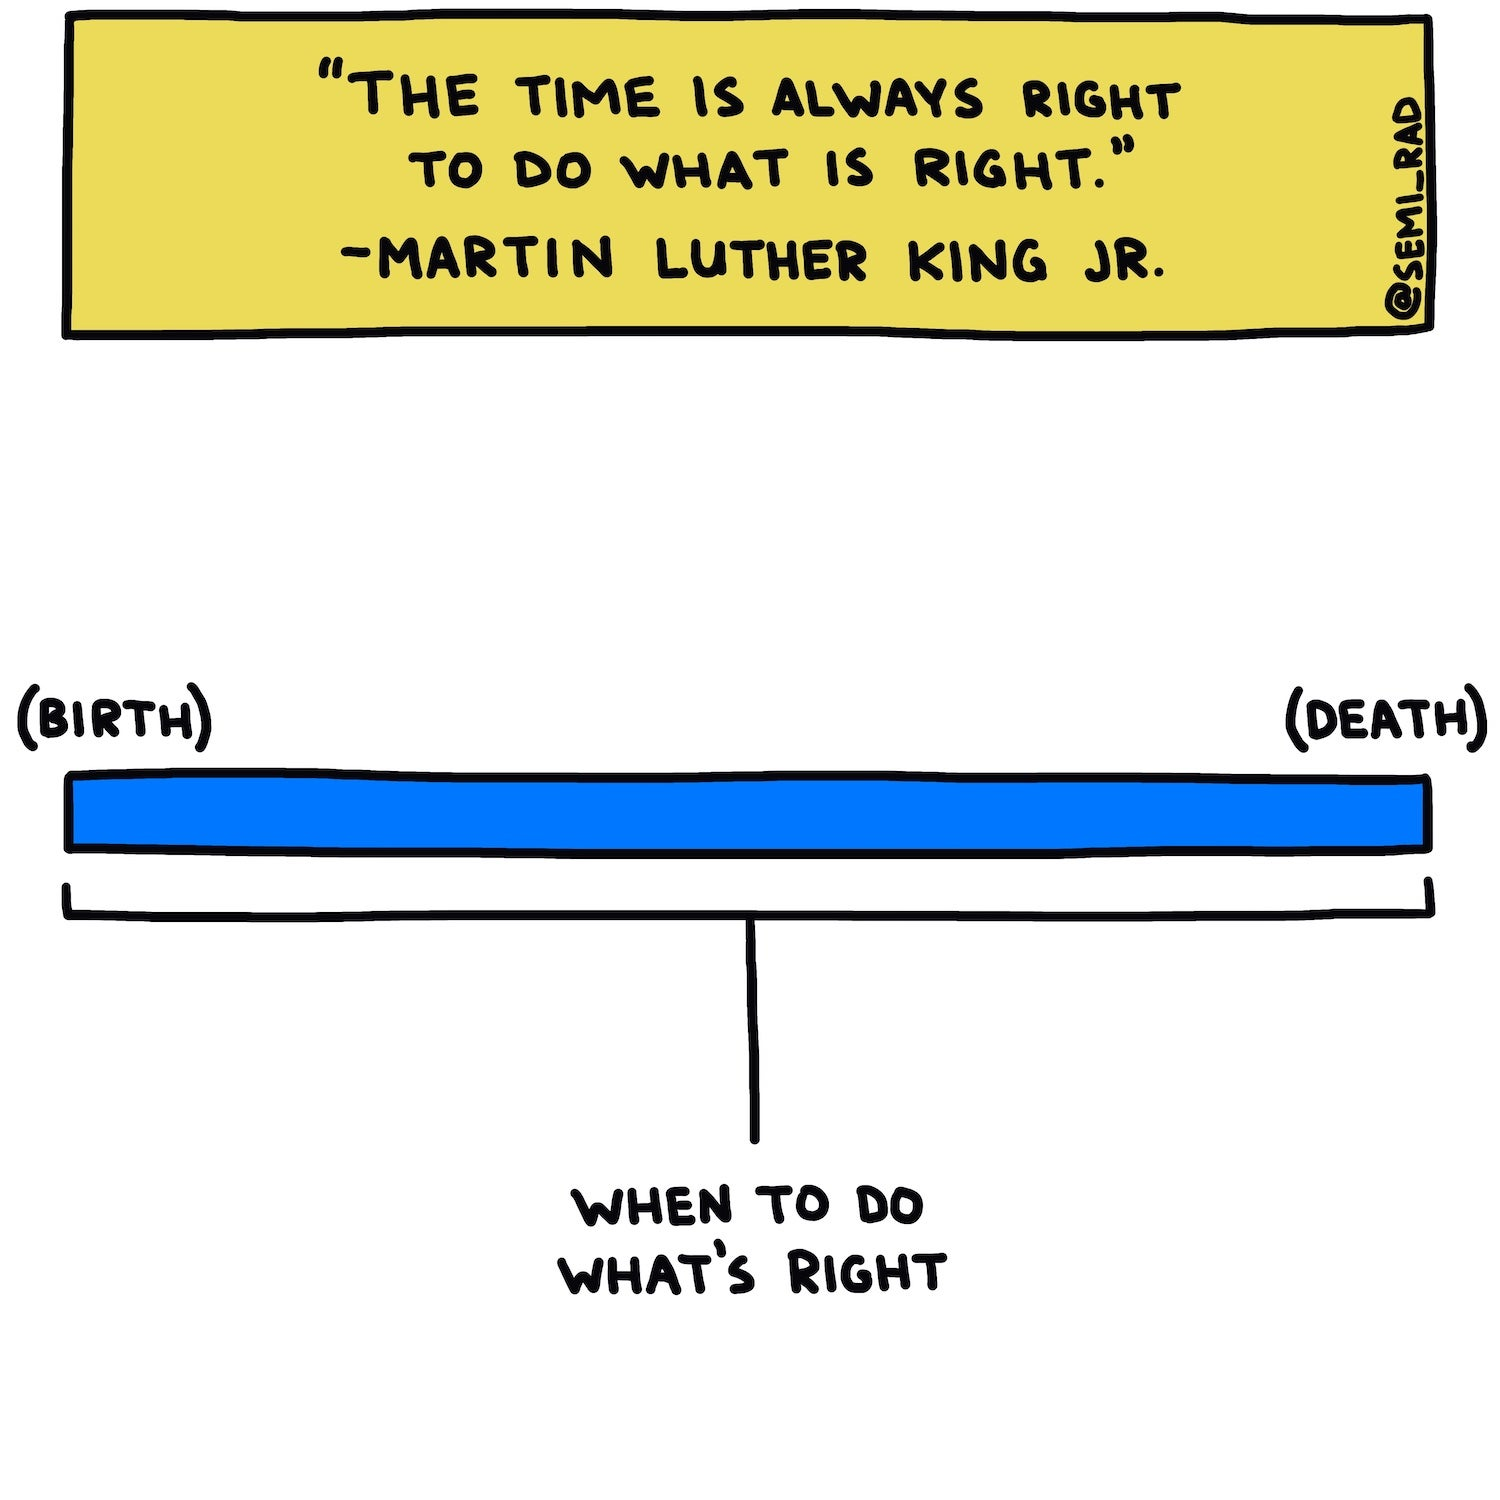 graph saying when to do what's right from birth to death with Martin Luther King Jr. quote